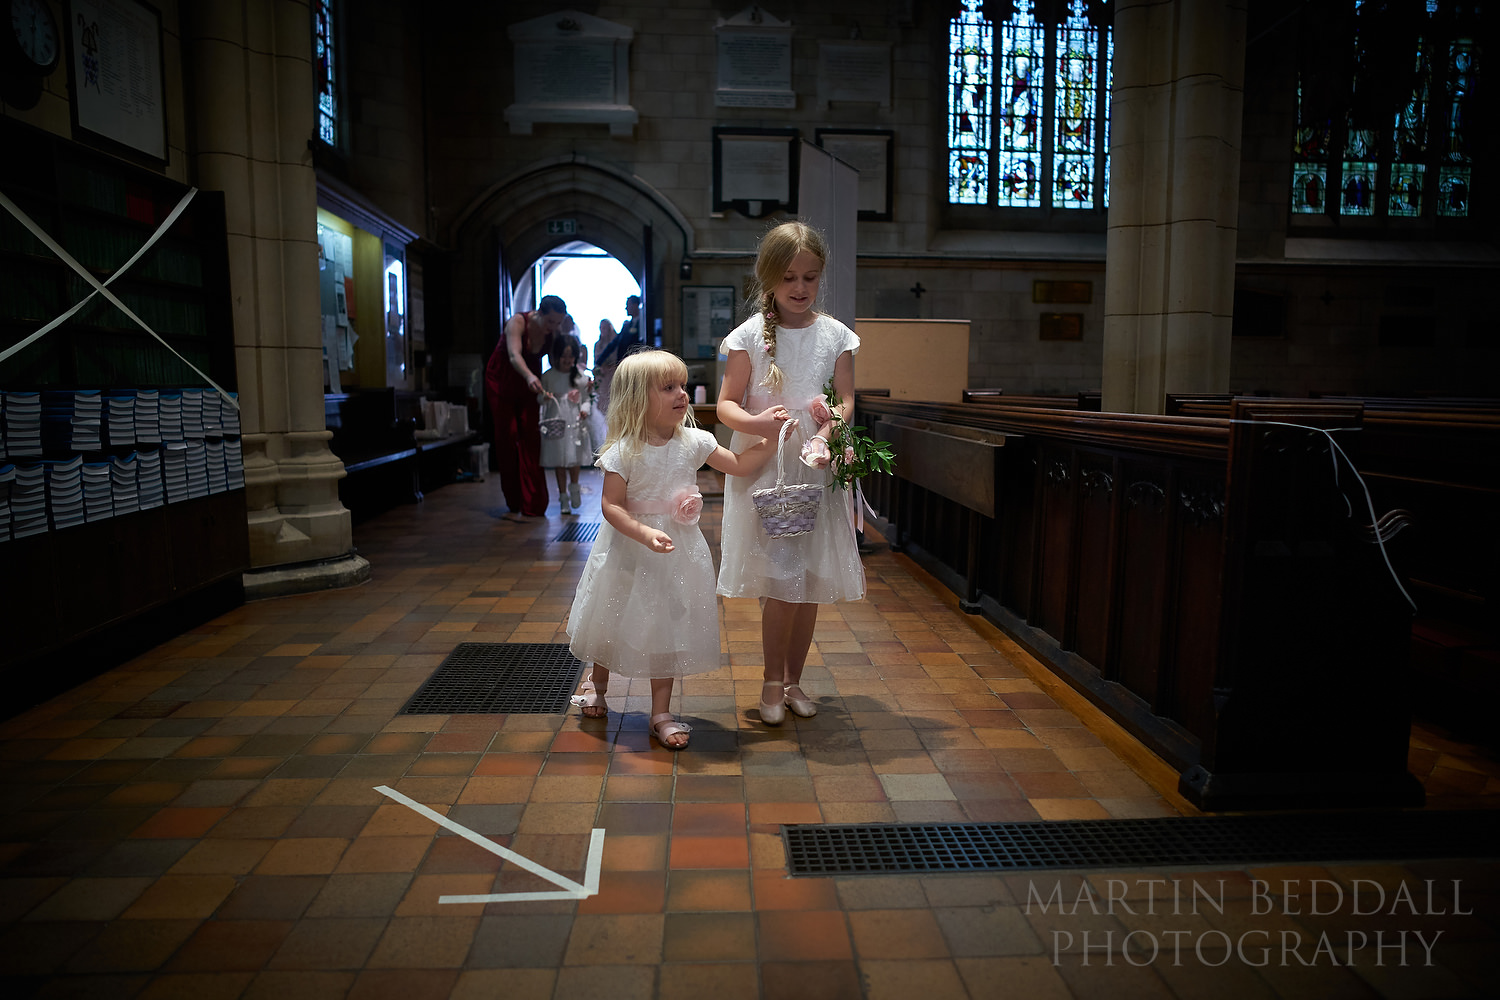 Flower girls start the wedding ceremony